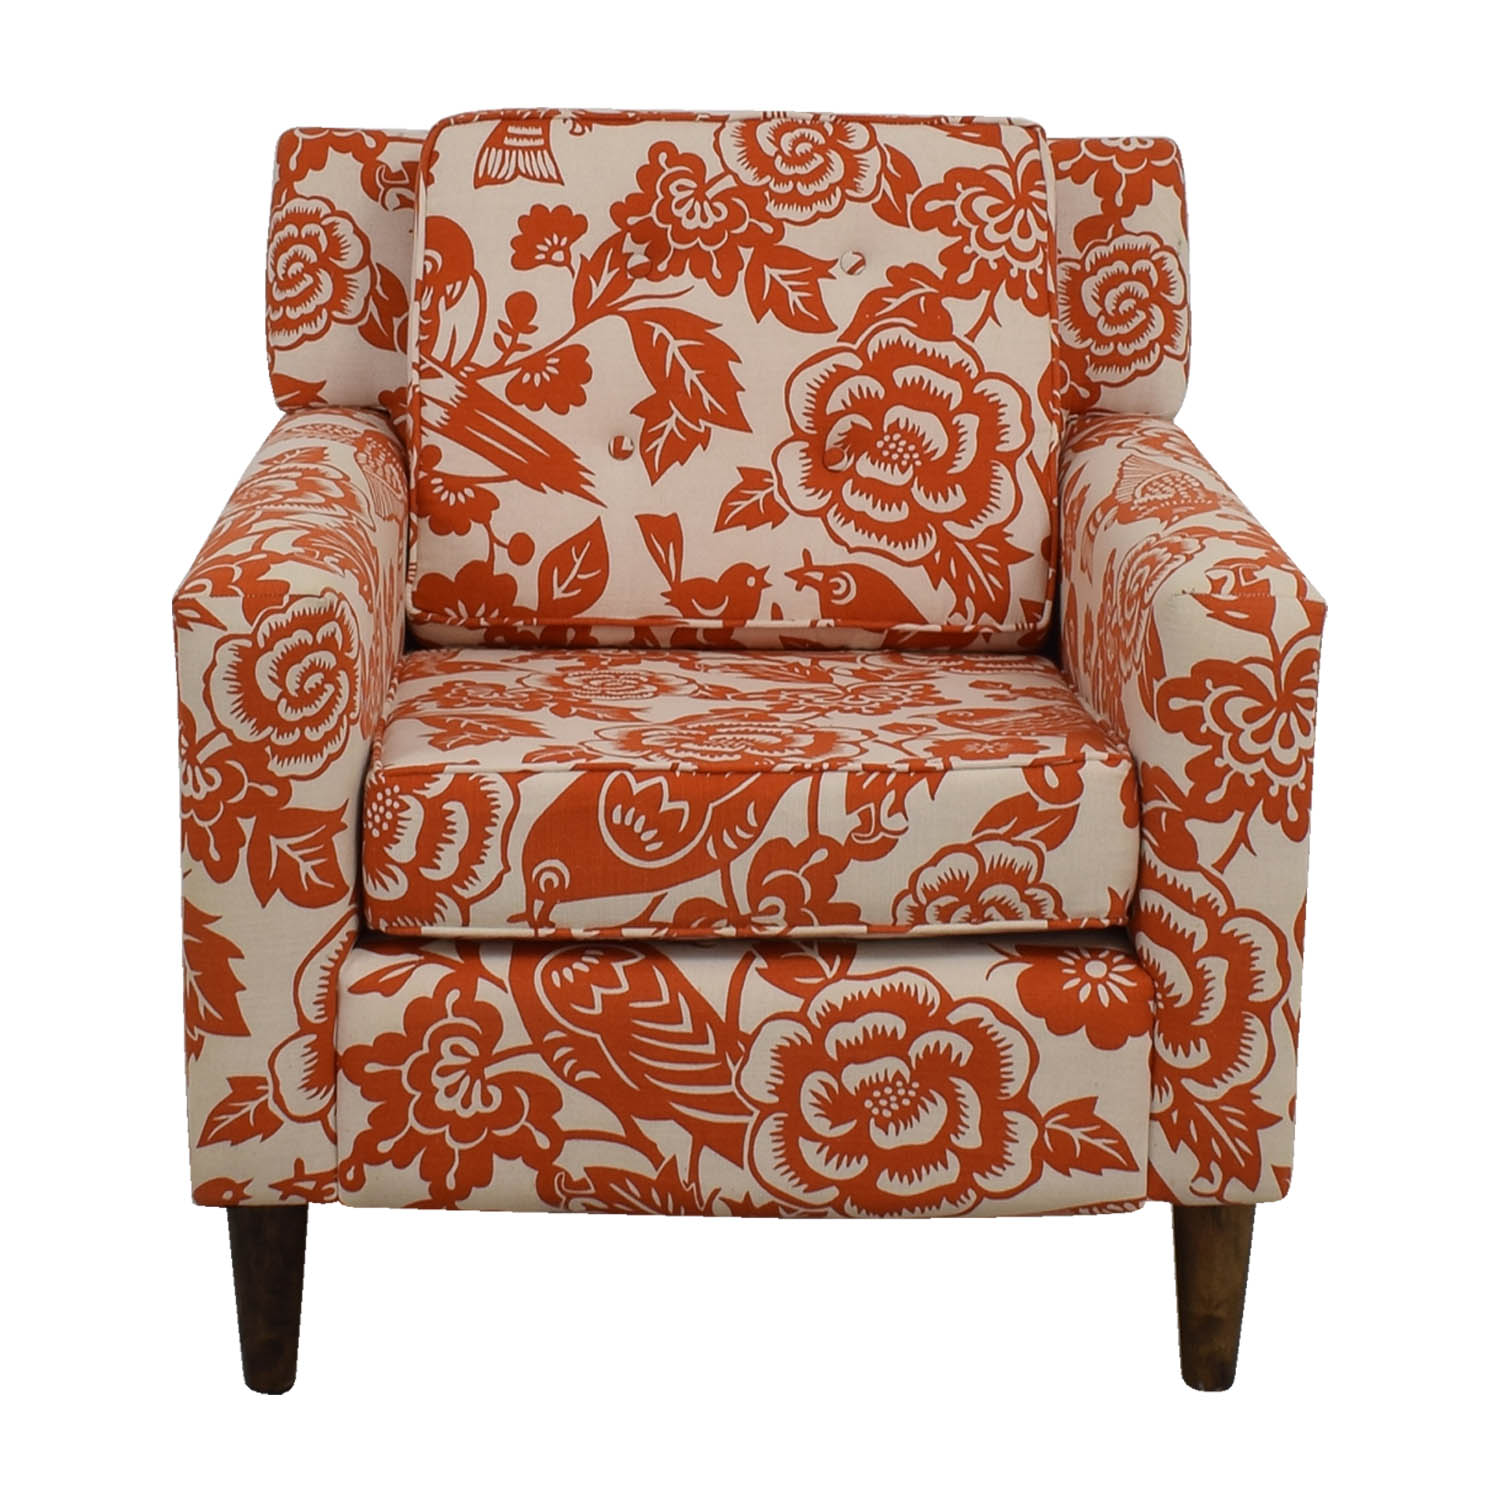 90 off orange floral accent armchair chairs